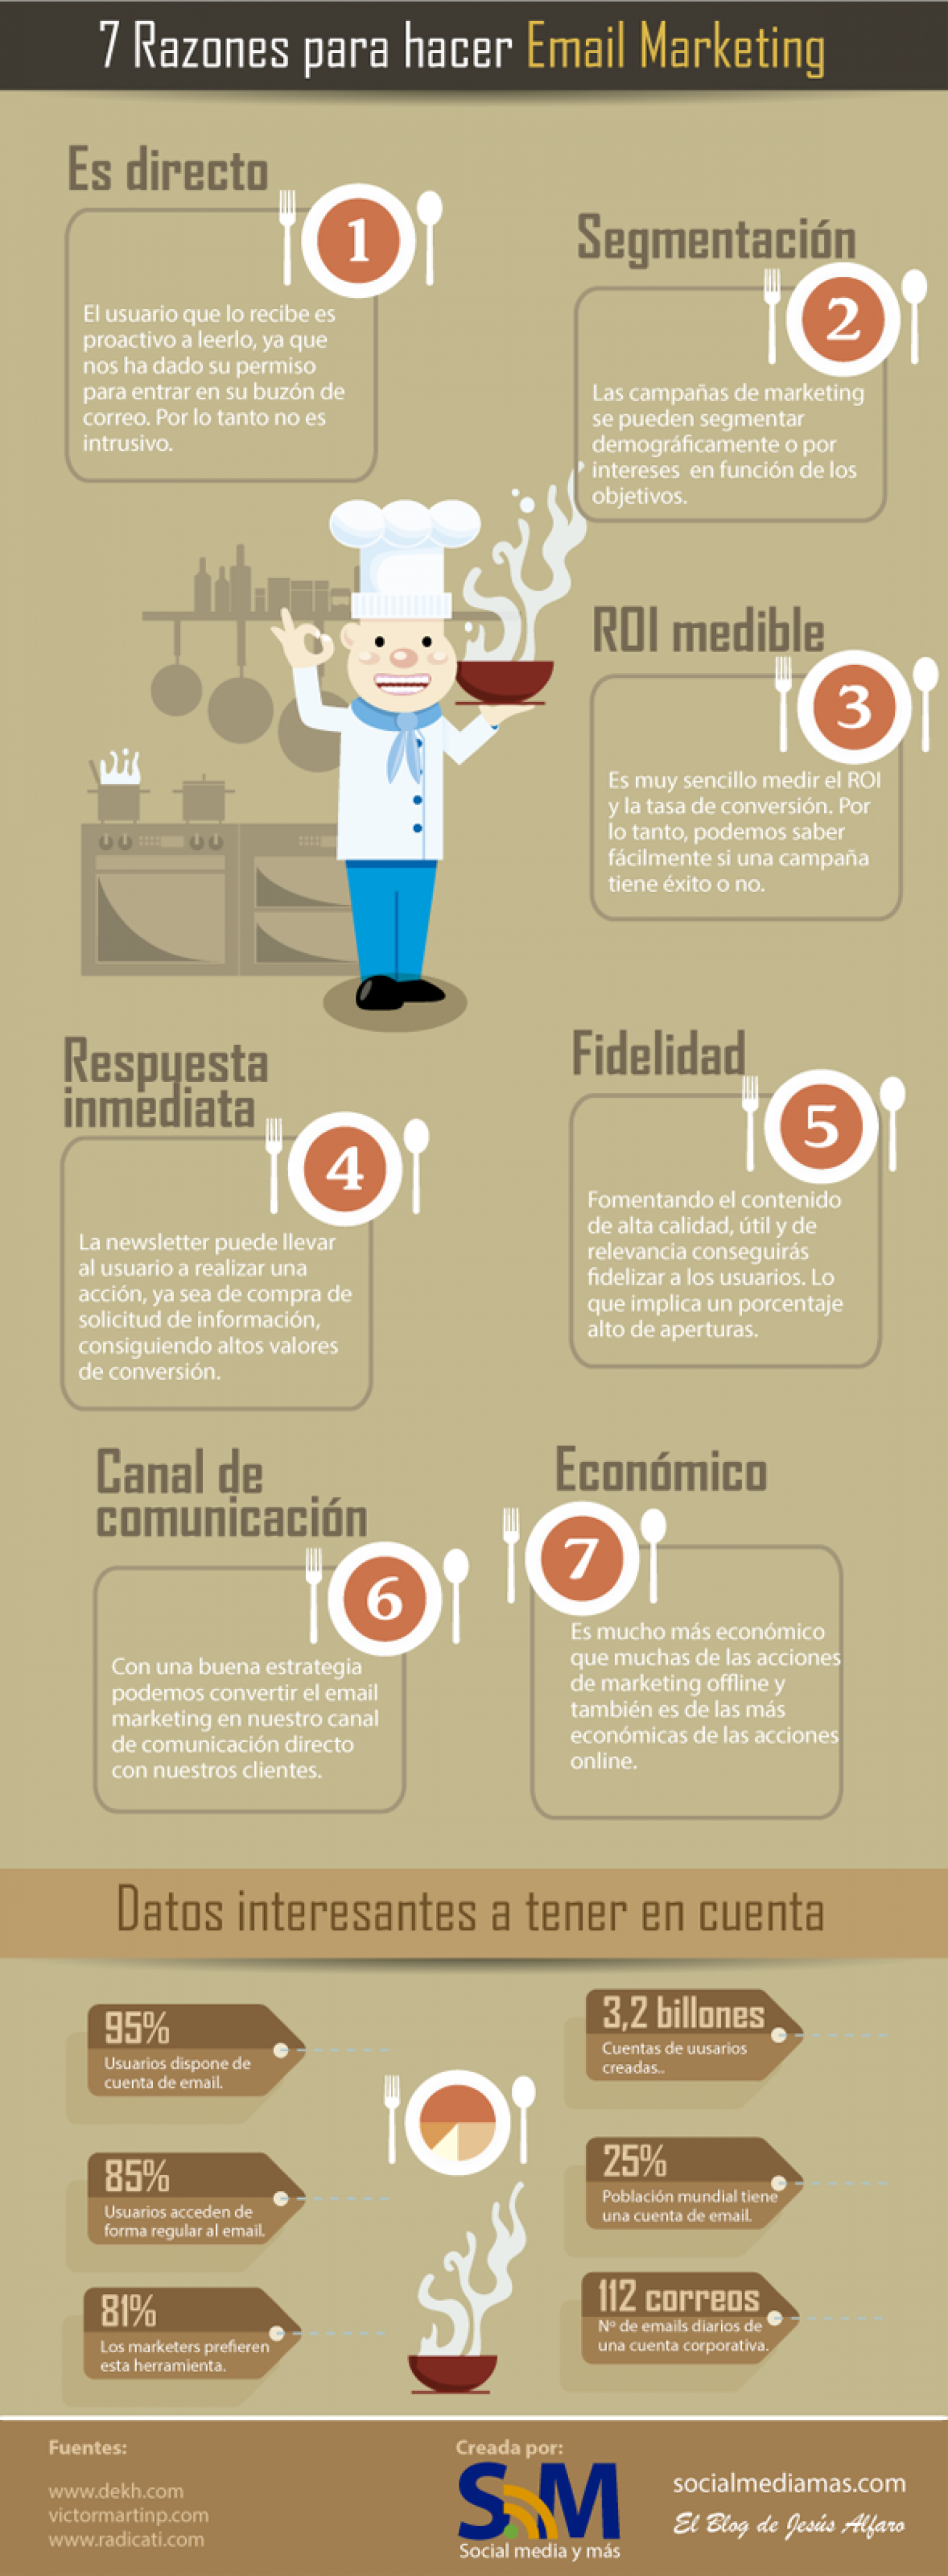 7 Razones para hacer email marketing Infographic